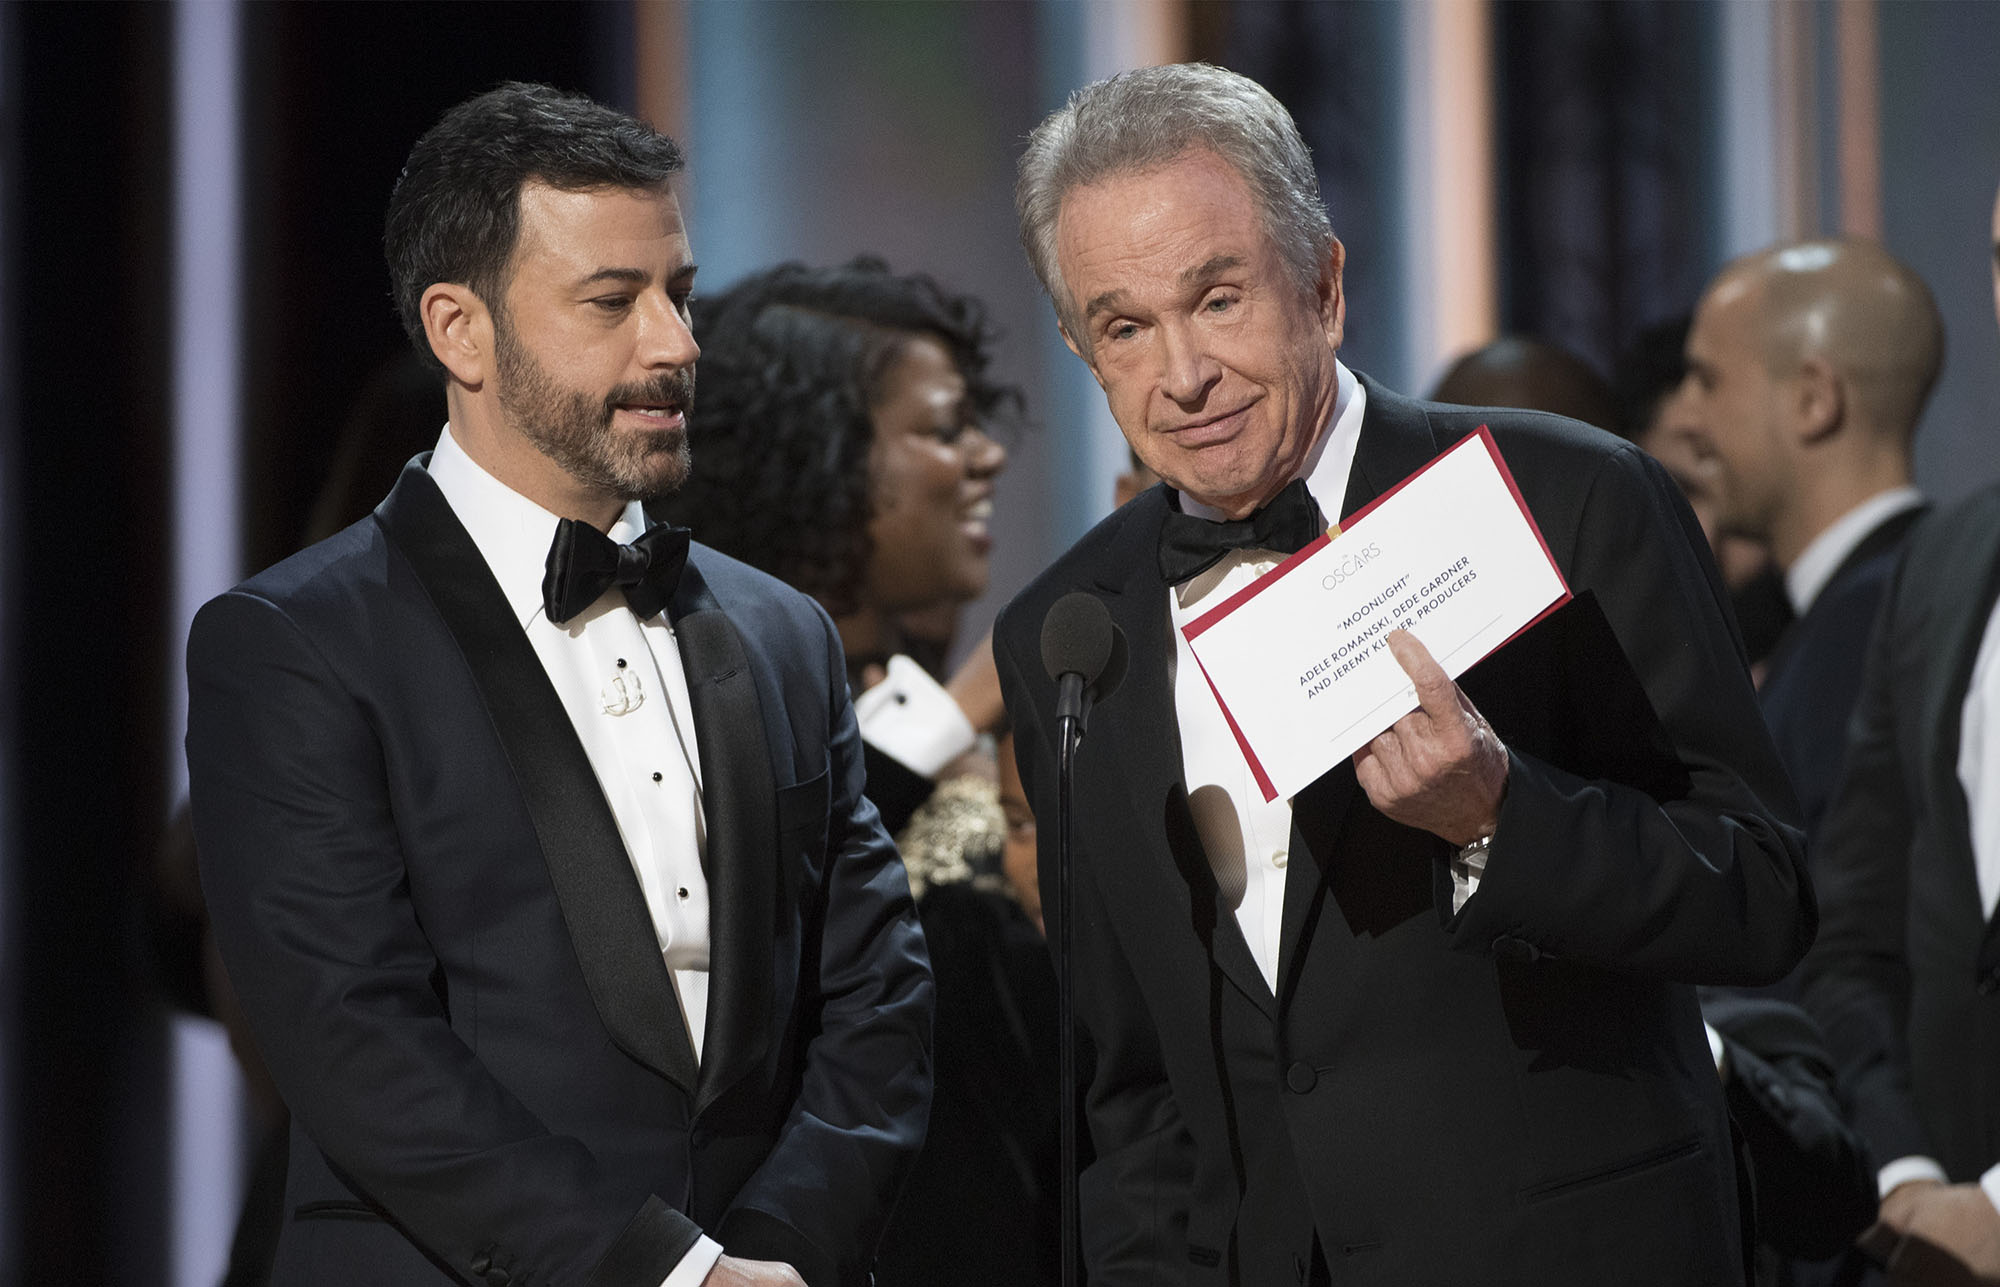 Grab Cut Insert Cut ABC's Coverage Of The 89th Annual Academy Awards